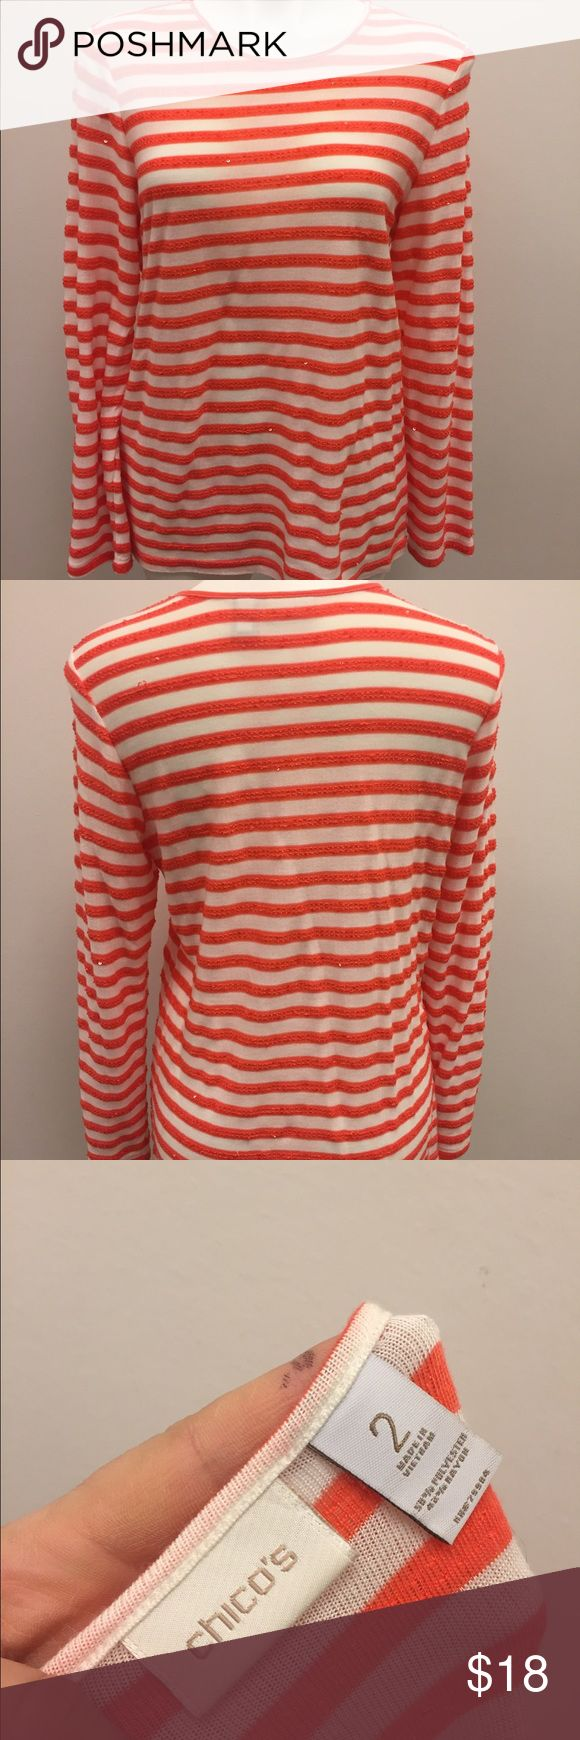 Chicos nautical striped sparkle top Beautiful Sleeved Knit Top from Chicos in a Geranium Poppy colored stripe with creamy white. There are also Sparkle accents to the blouse as well. I've only worn this Blouse one time. There is a small makeup mark at the neckline. Otherwise very good condition! It is a Chicos size 2 which equals a size large. #stripes #chicos #nautical #poppy #spring #bright Chico's Tops